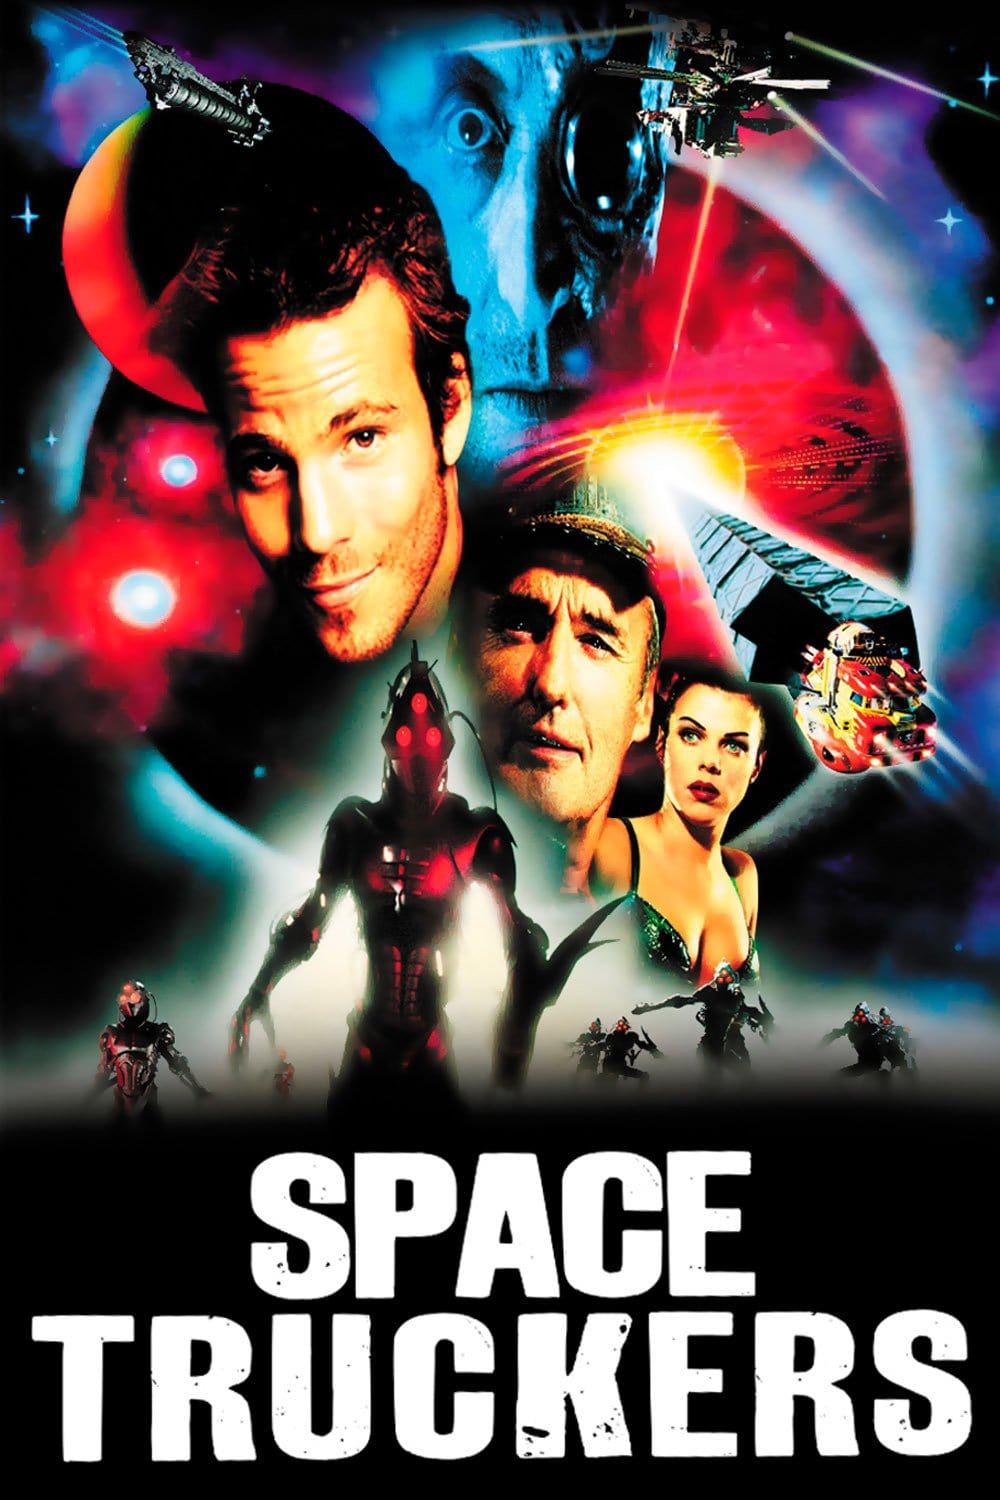 Regarder Space Truckers en streaming gratuit